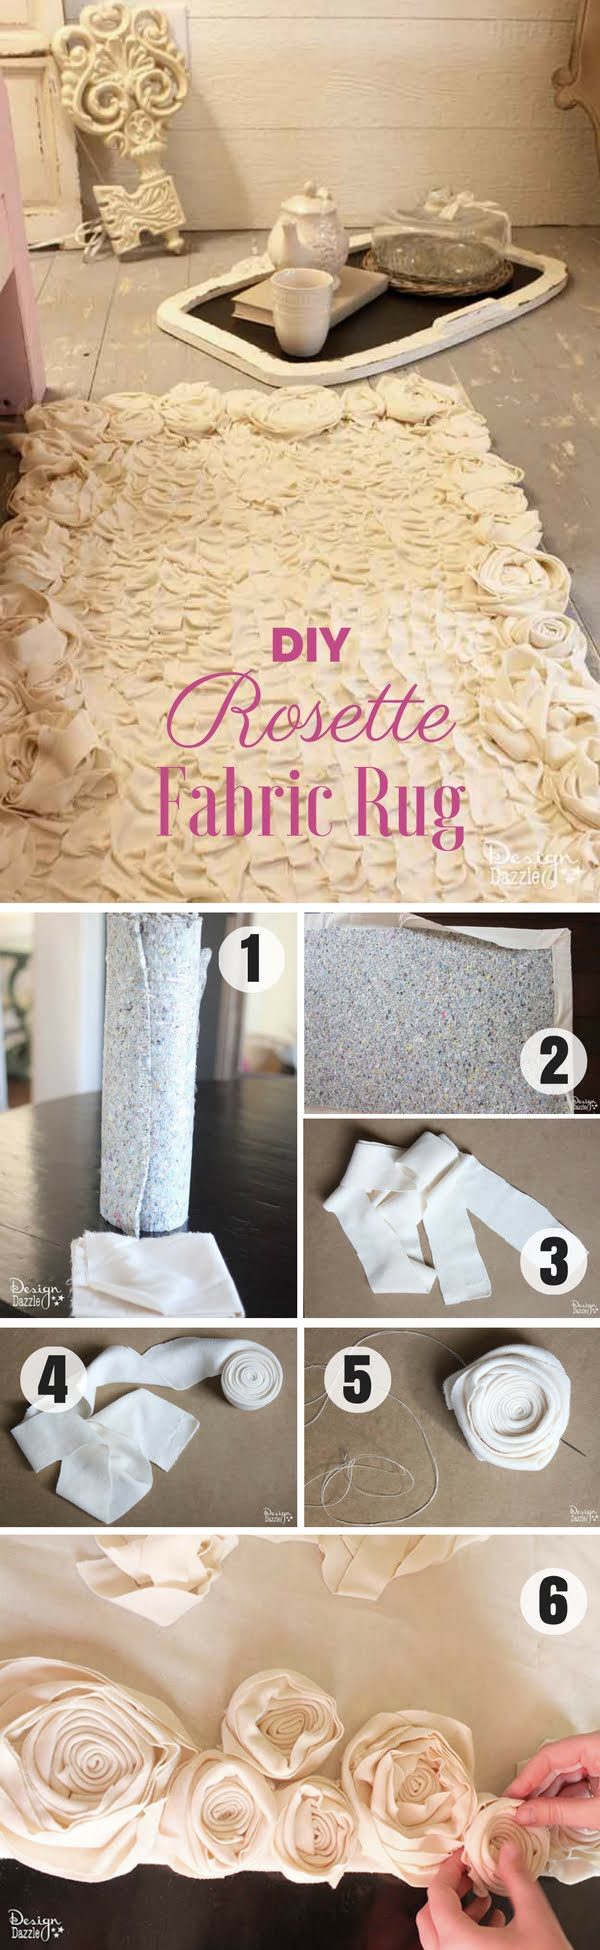 Check out how to make an easy shabby chic DIY Rrosette Fabric Rug